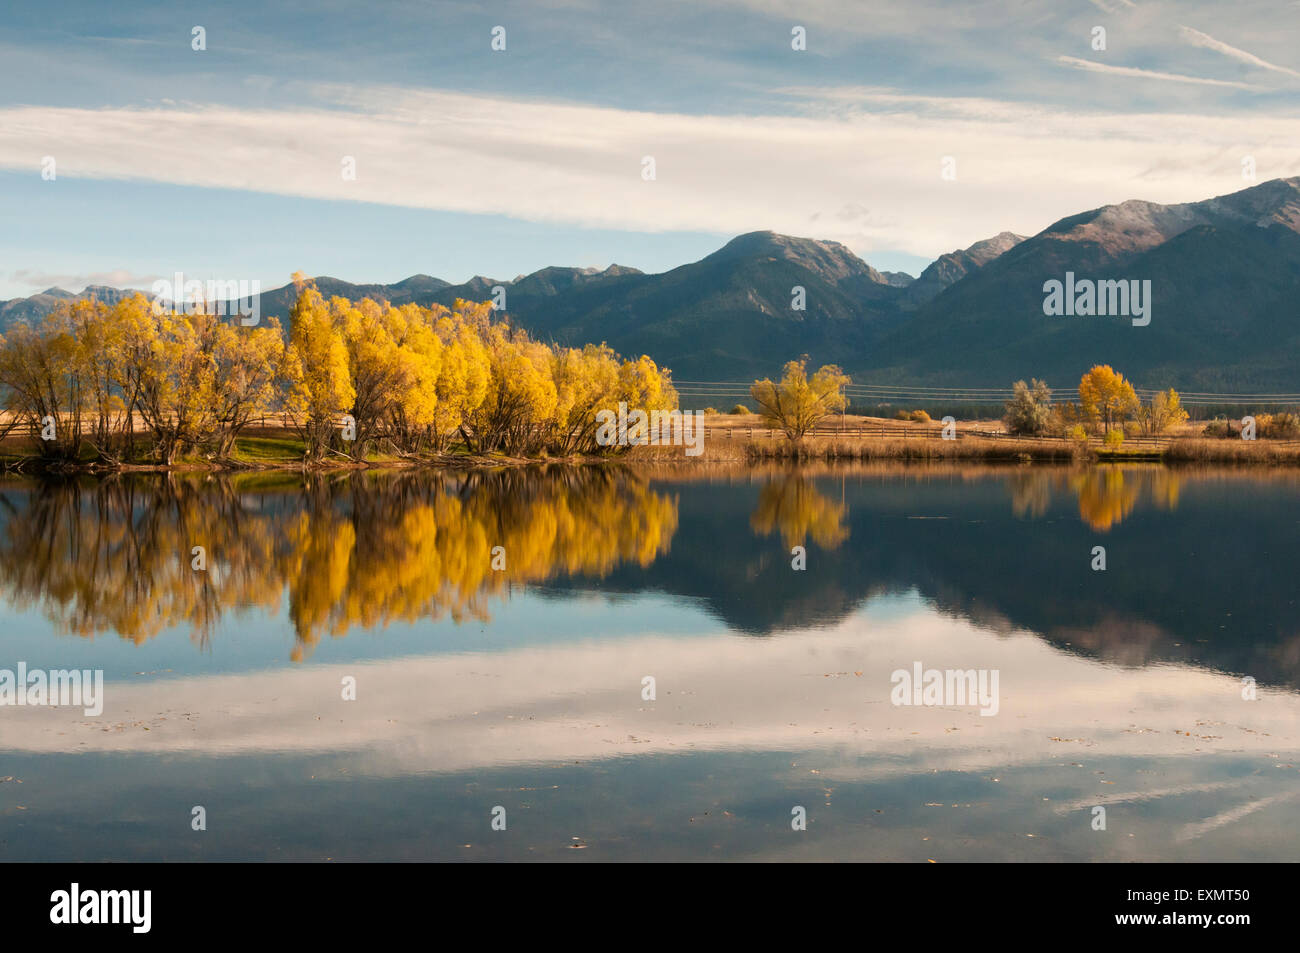 Colorful Cottonwood trees along the Kicking Horse Reservoir ajacent to Highway 93 in Western Montana backed by the - Stock Image